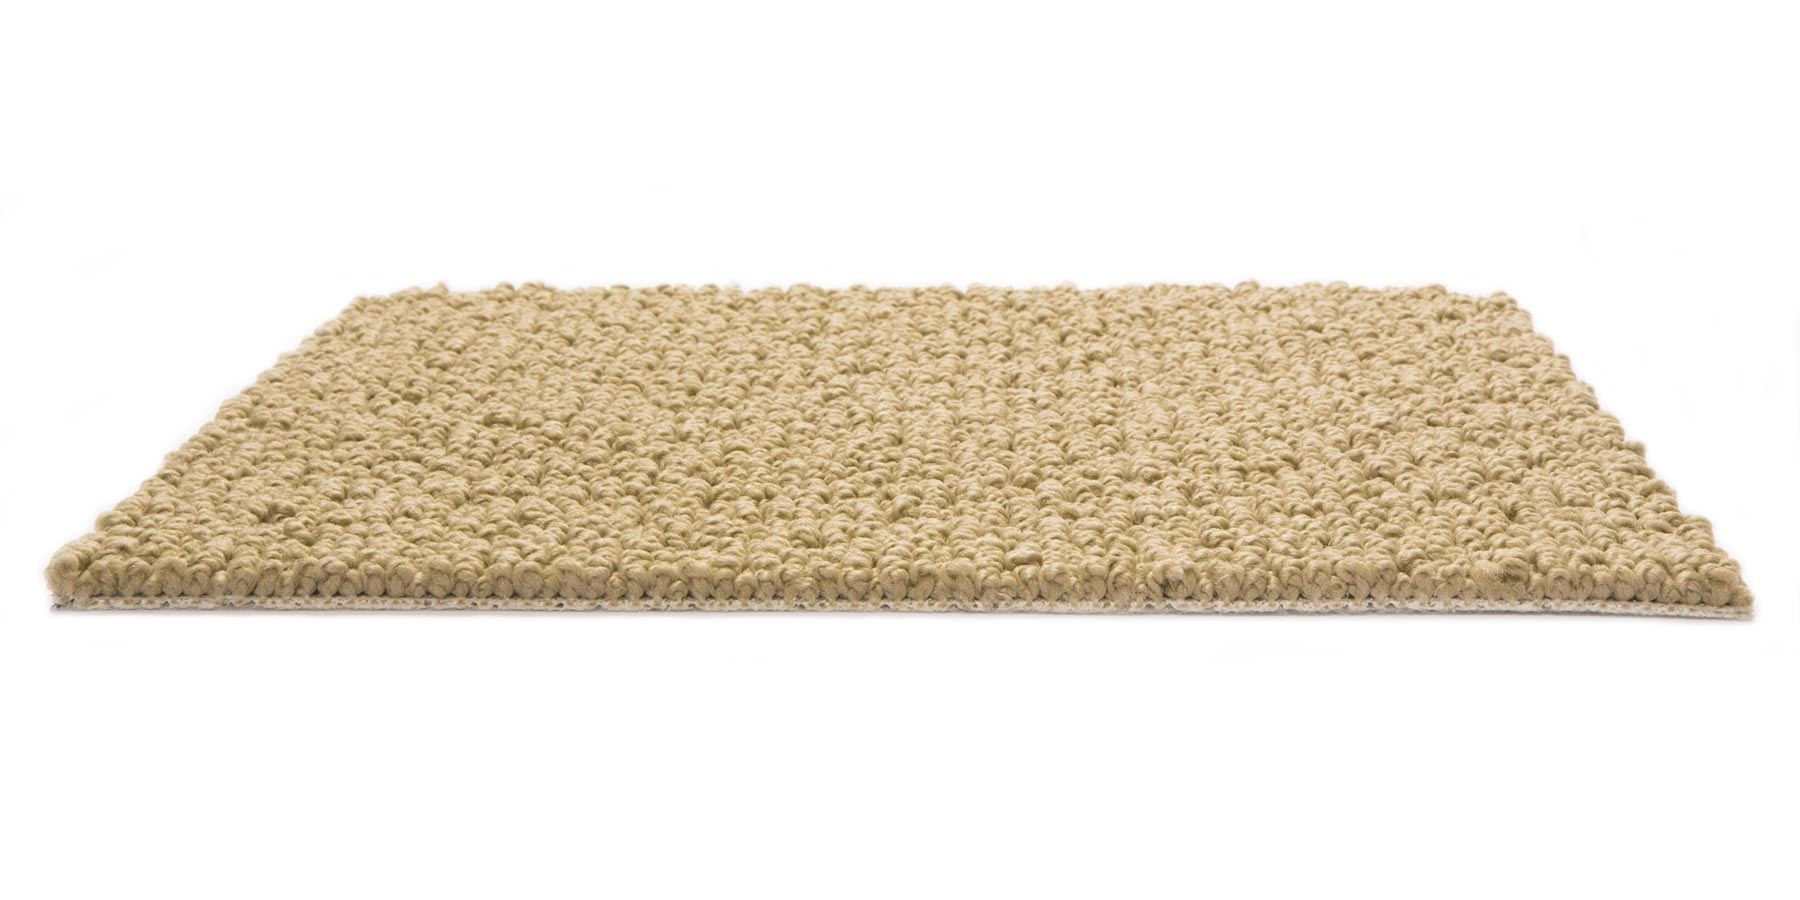 Casual Mood Saddle Blanket Carpet